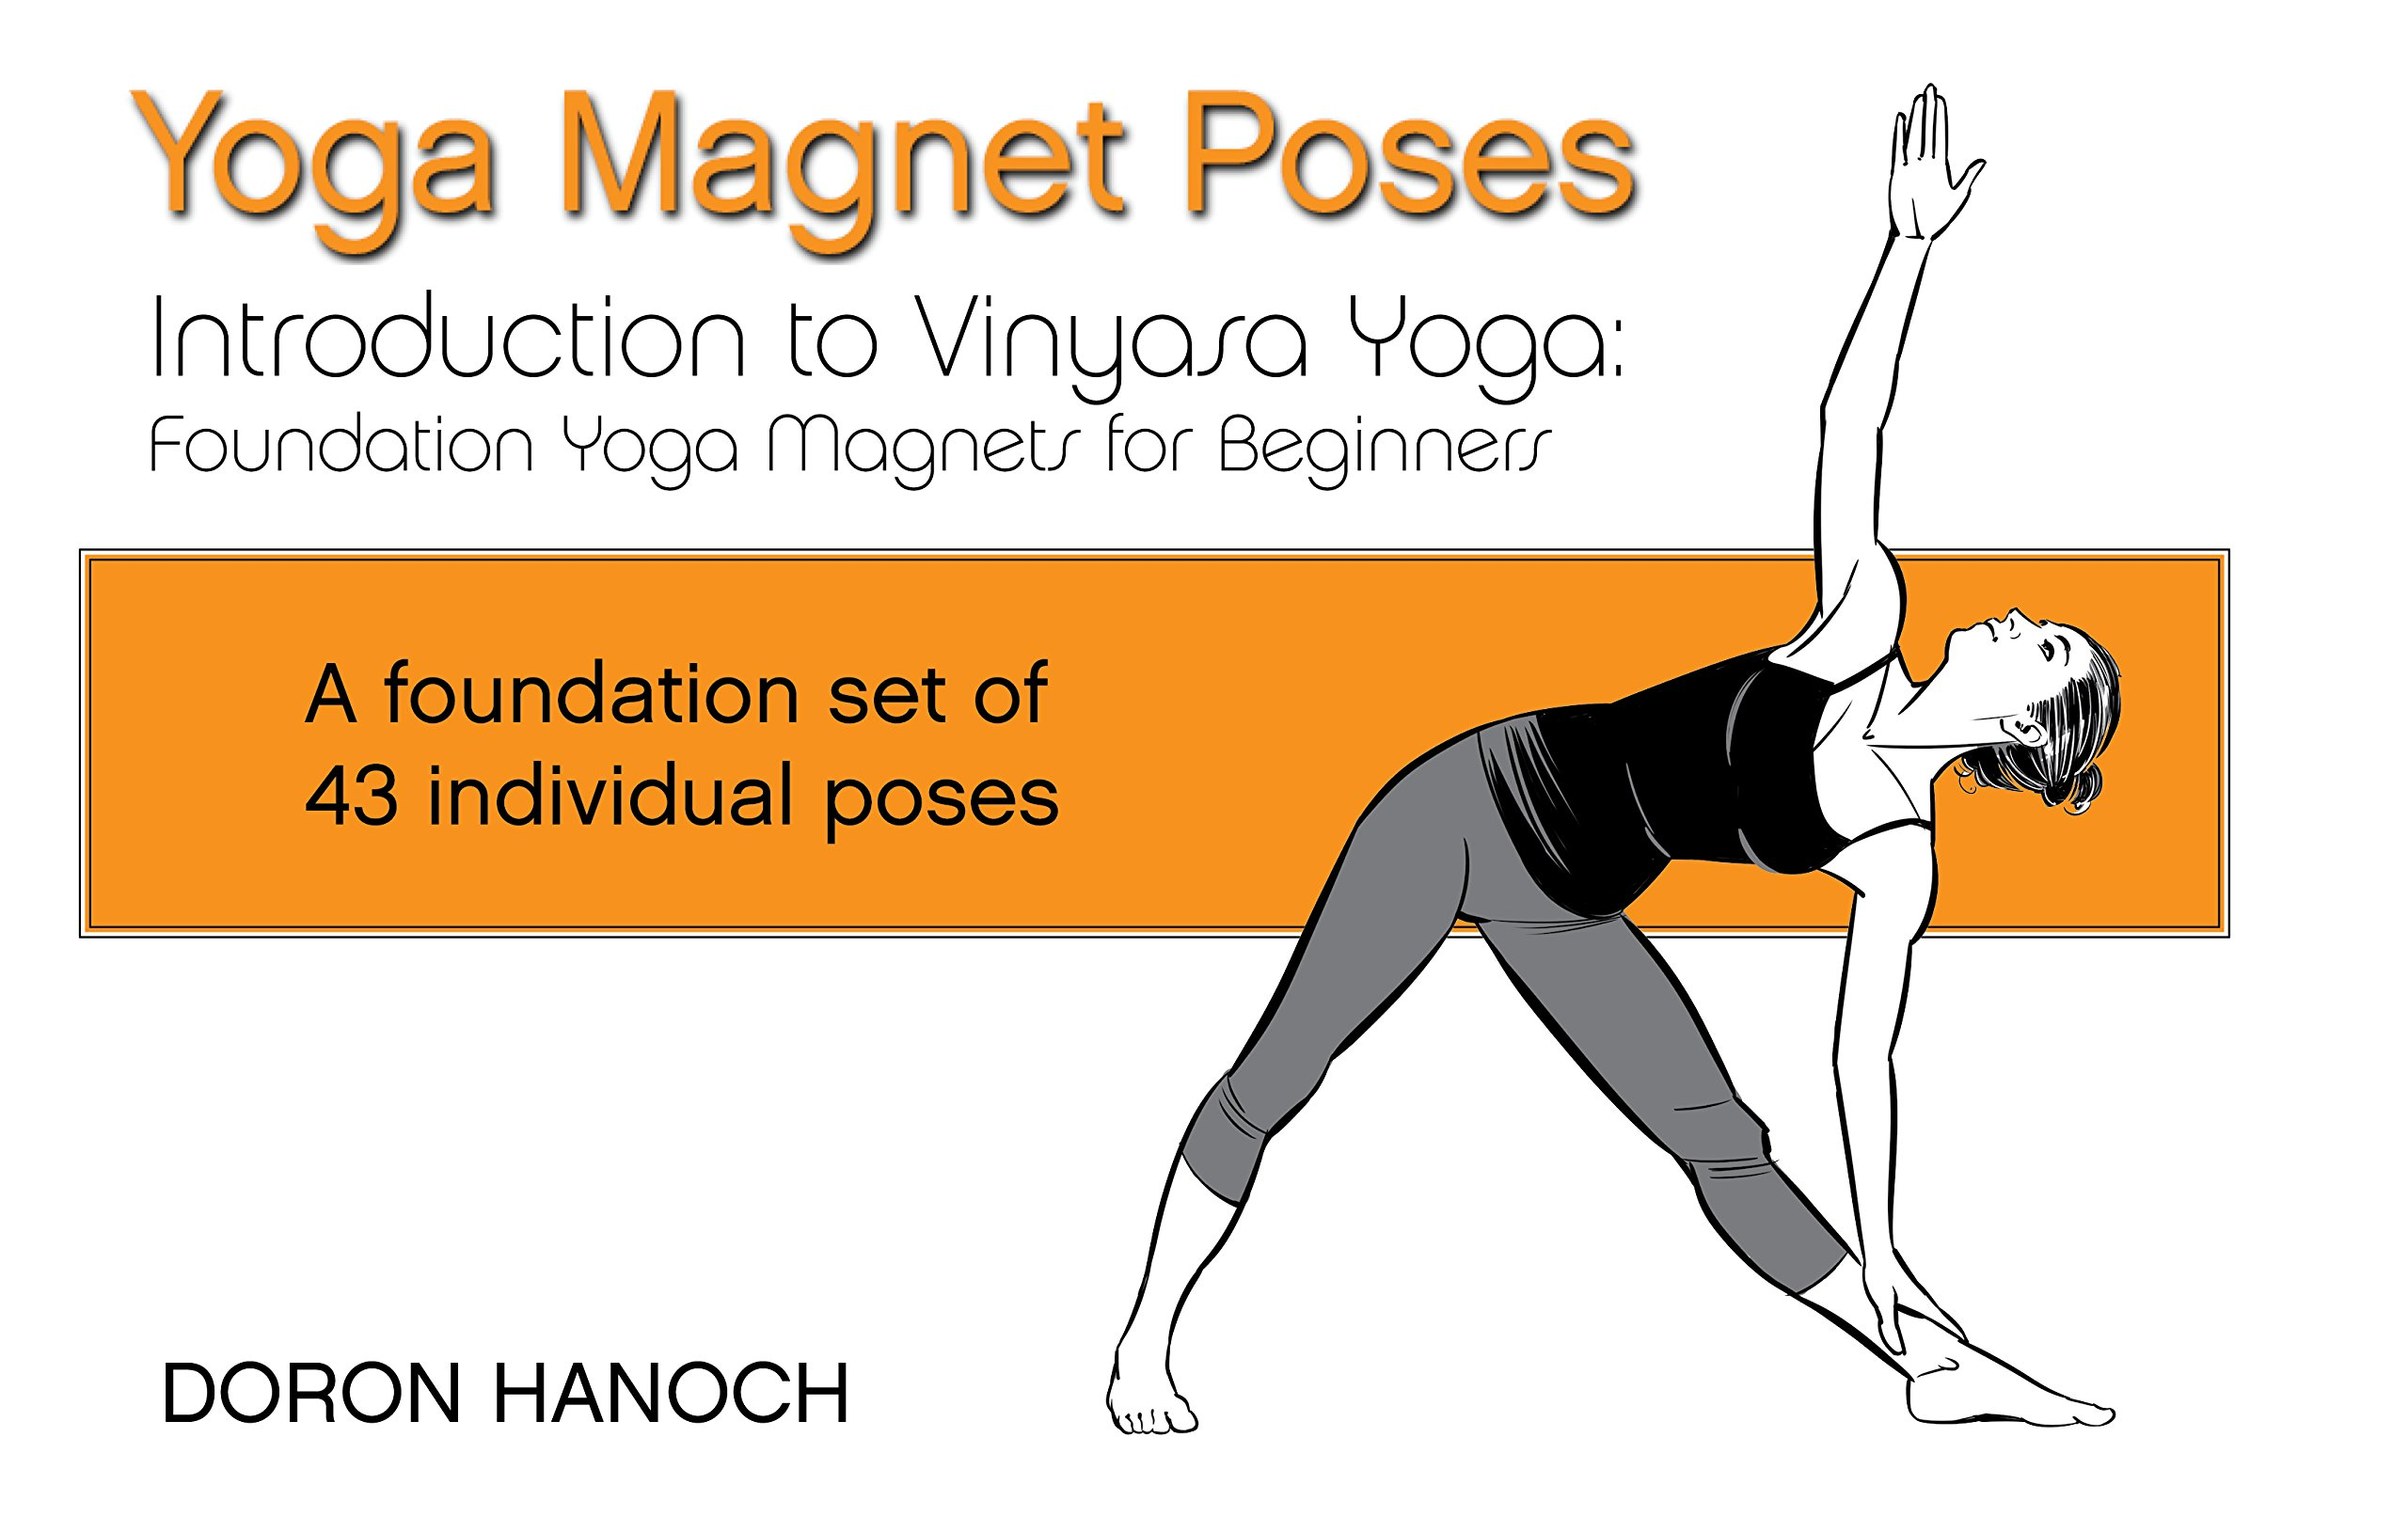 Introduction to Vinyasa Yoga: Foundation Yoga Magnets for